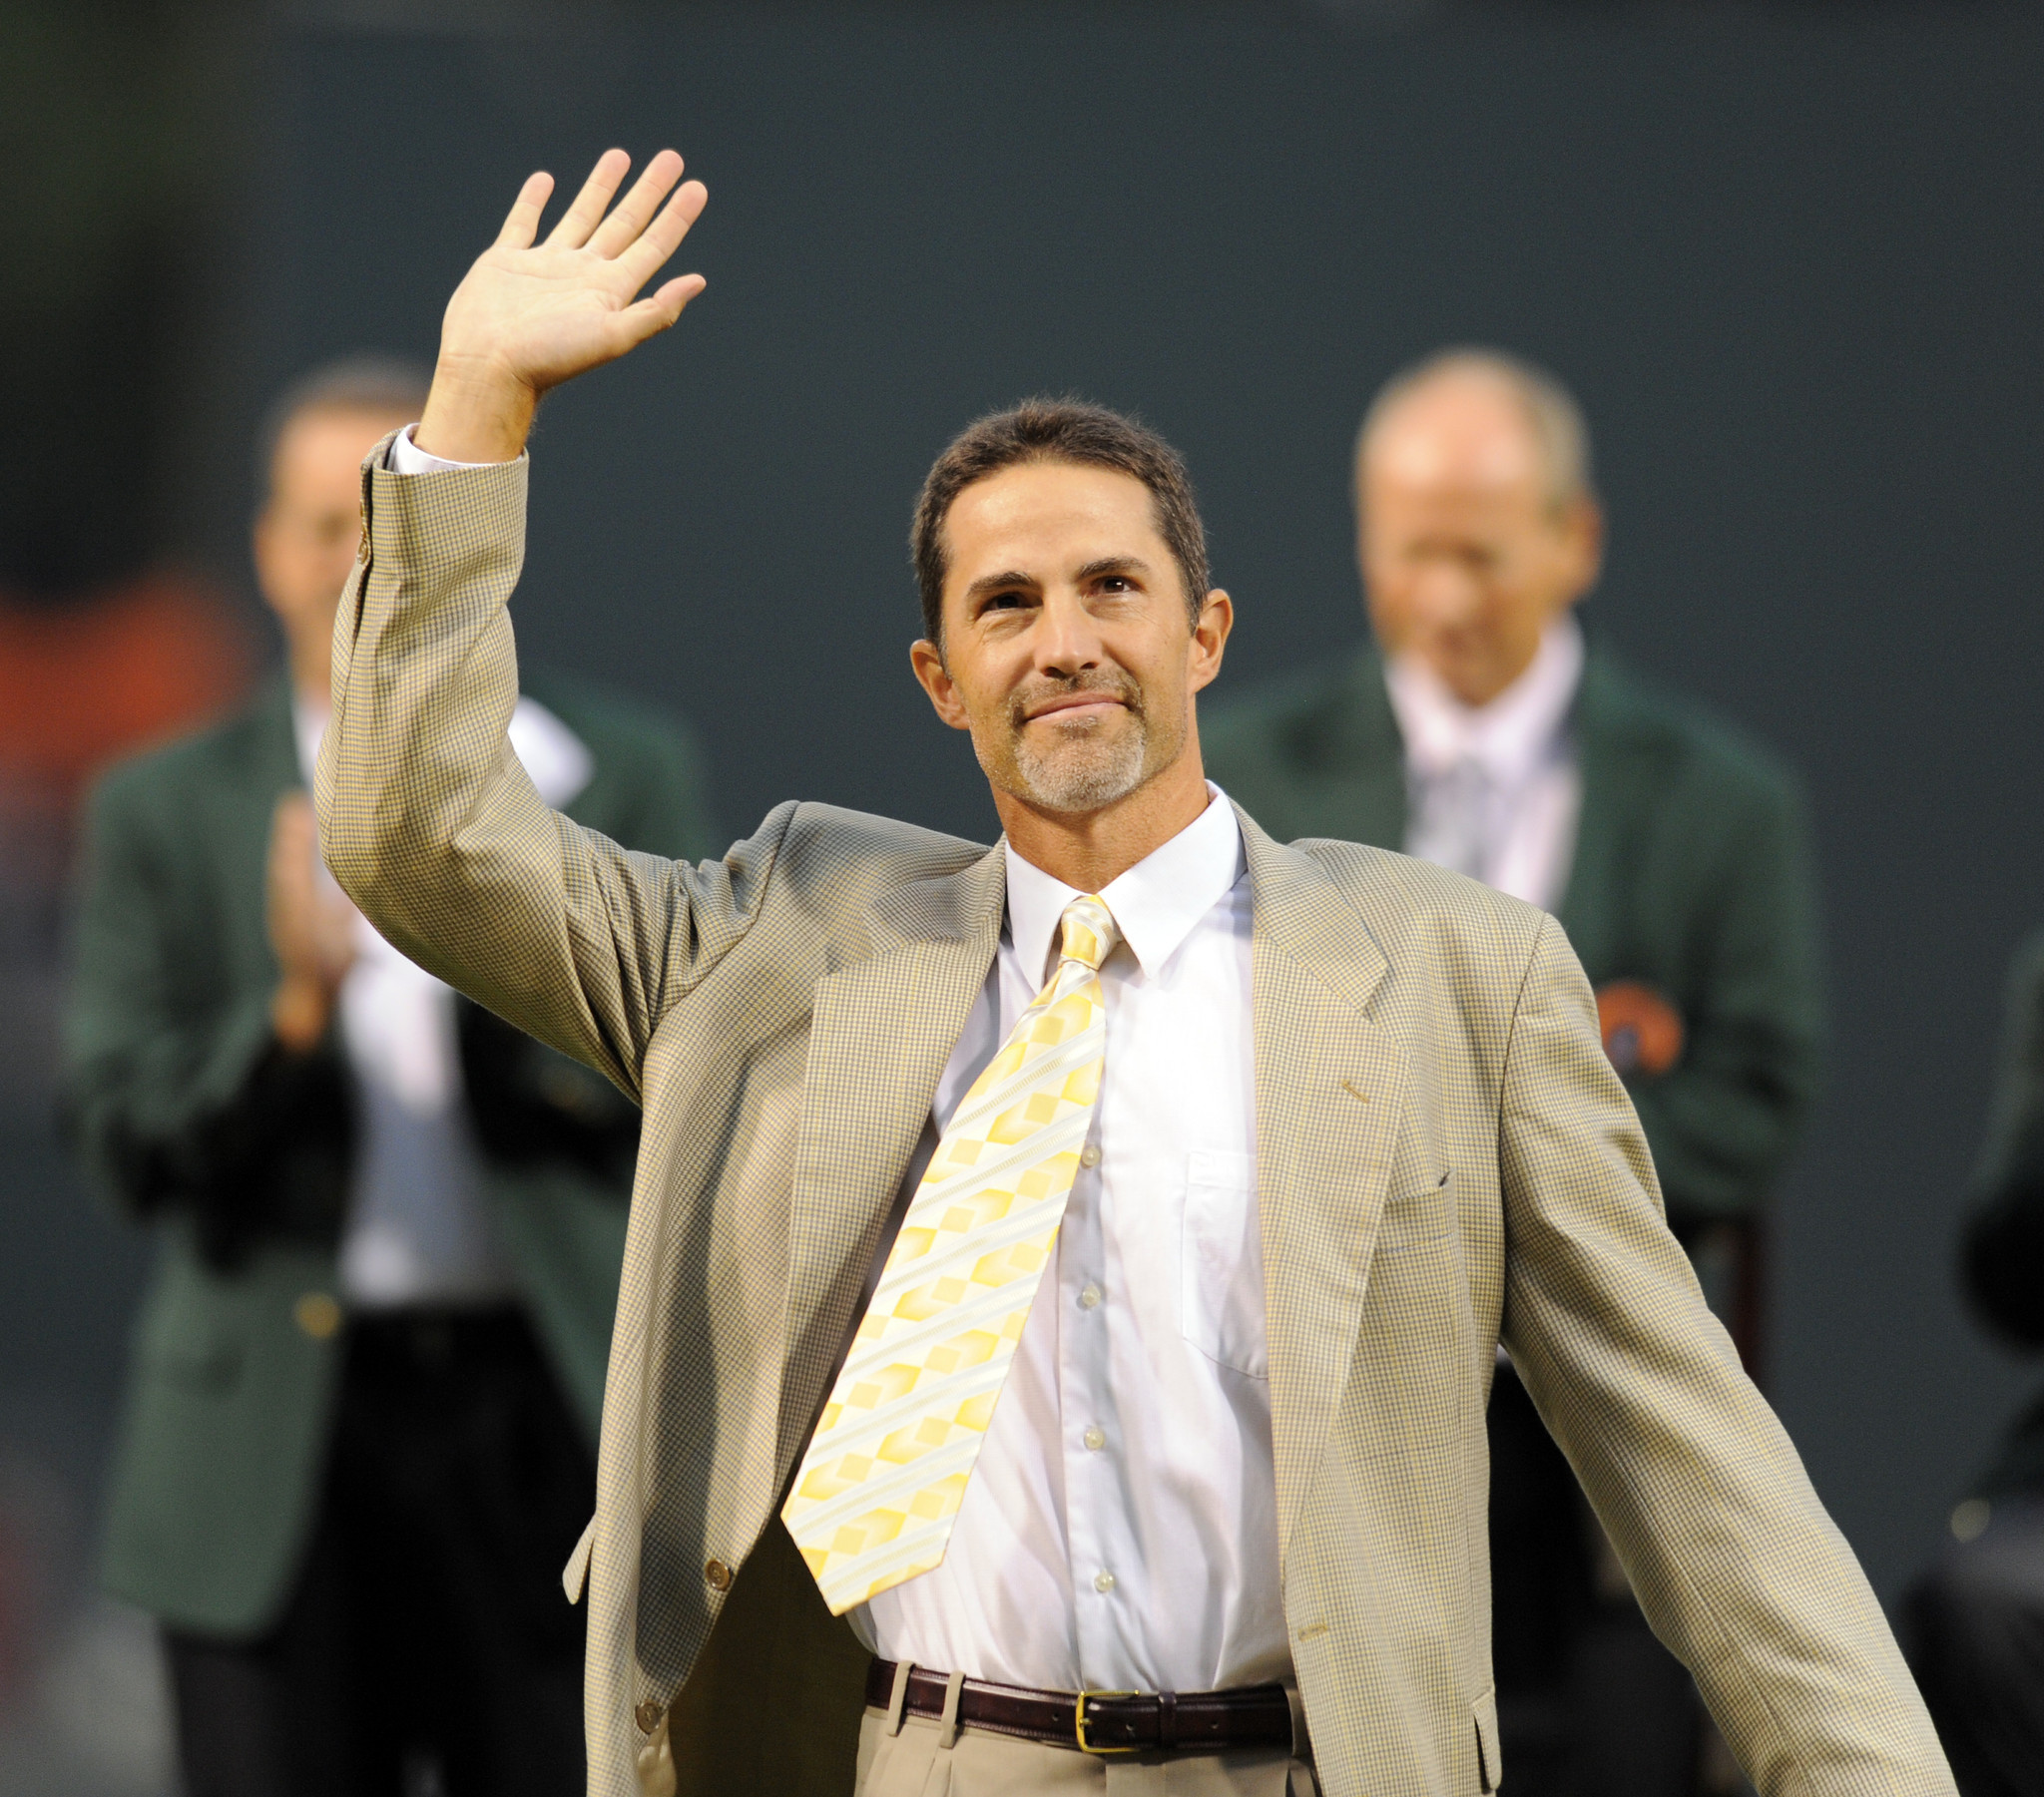 Former Oriole Mike Mussina waves to the crowd during an induction ceremony into the Orioles Hall of Fame before the game.